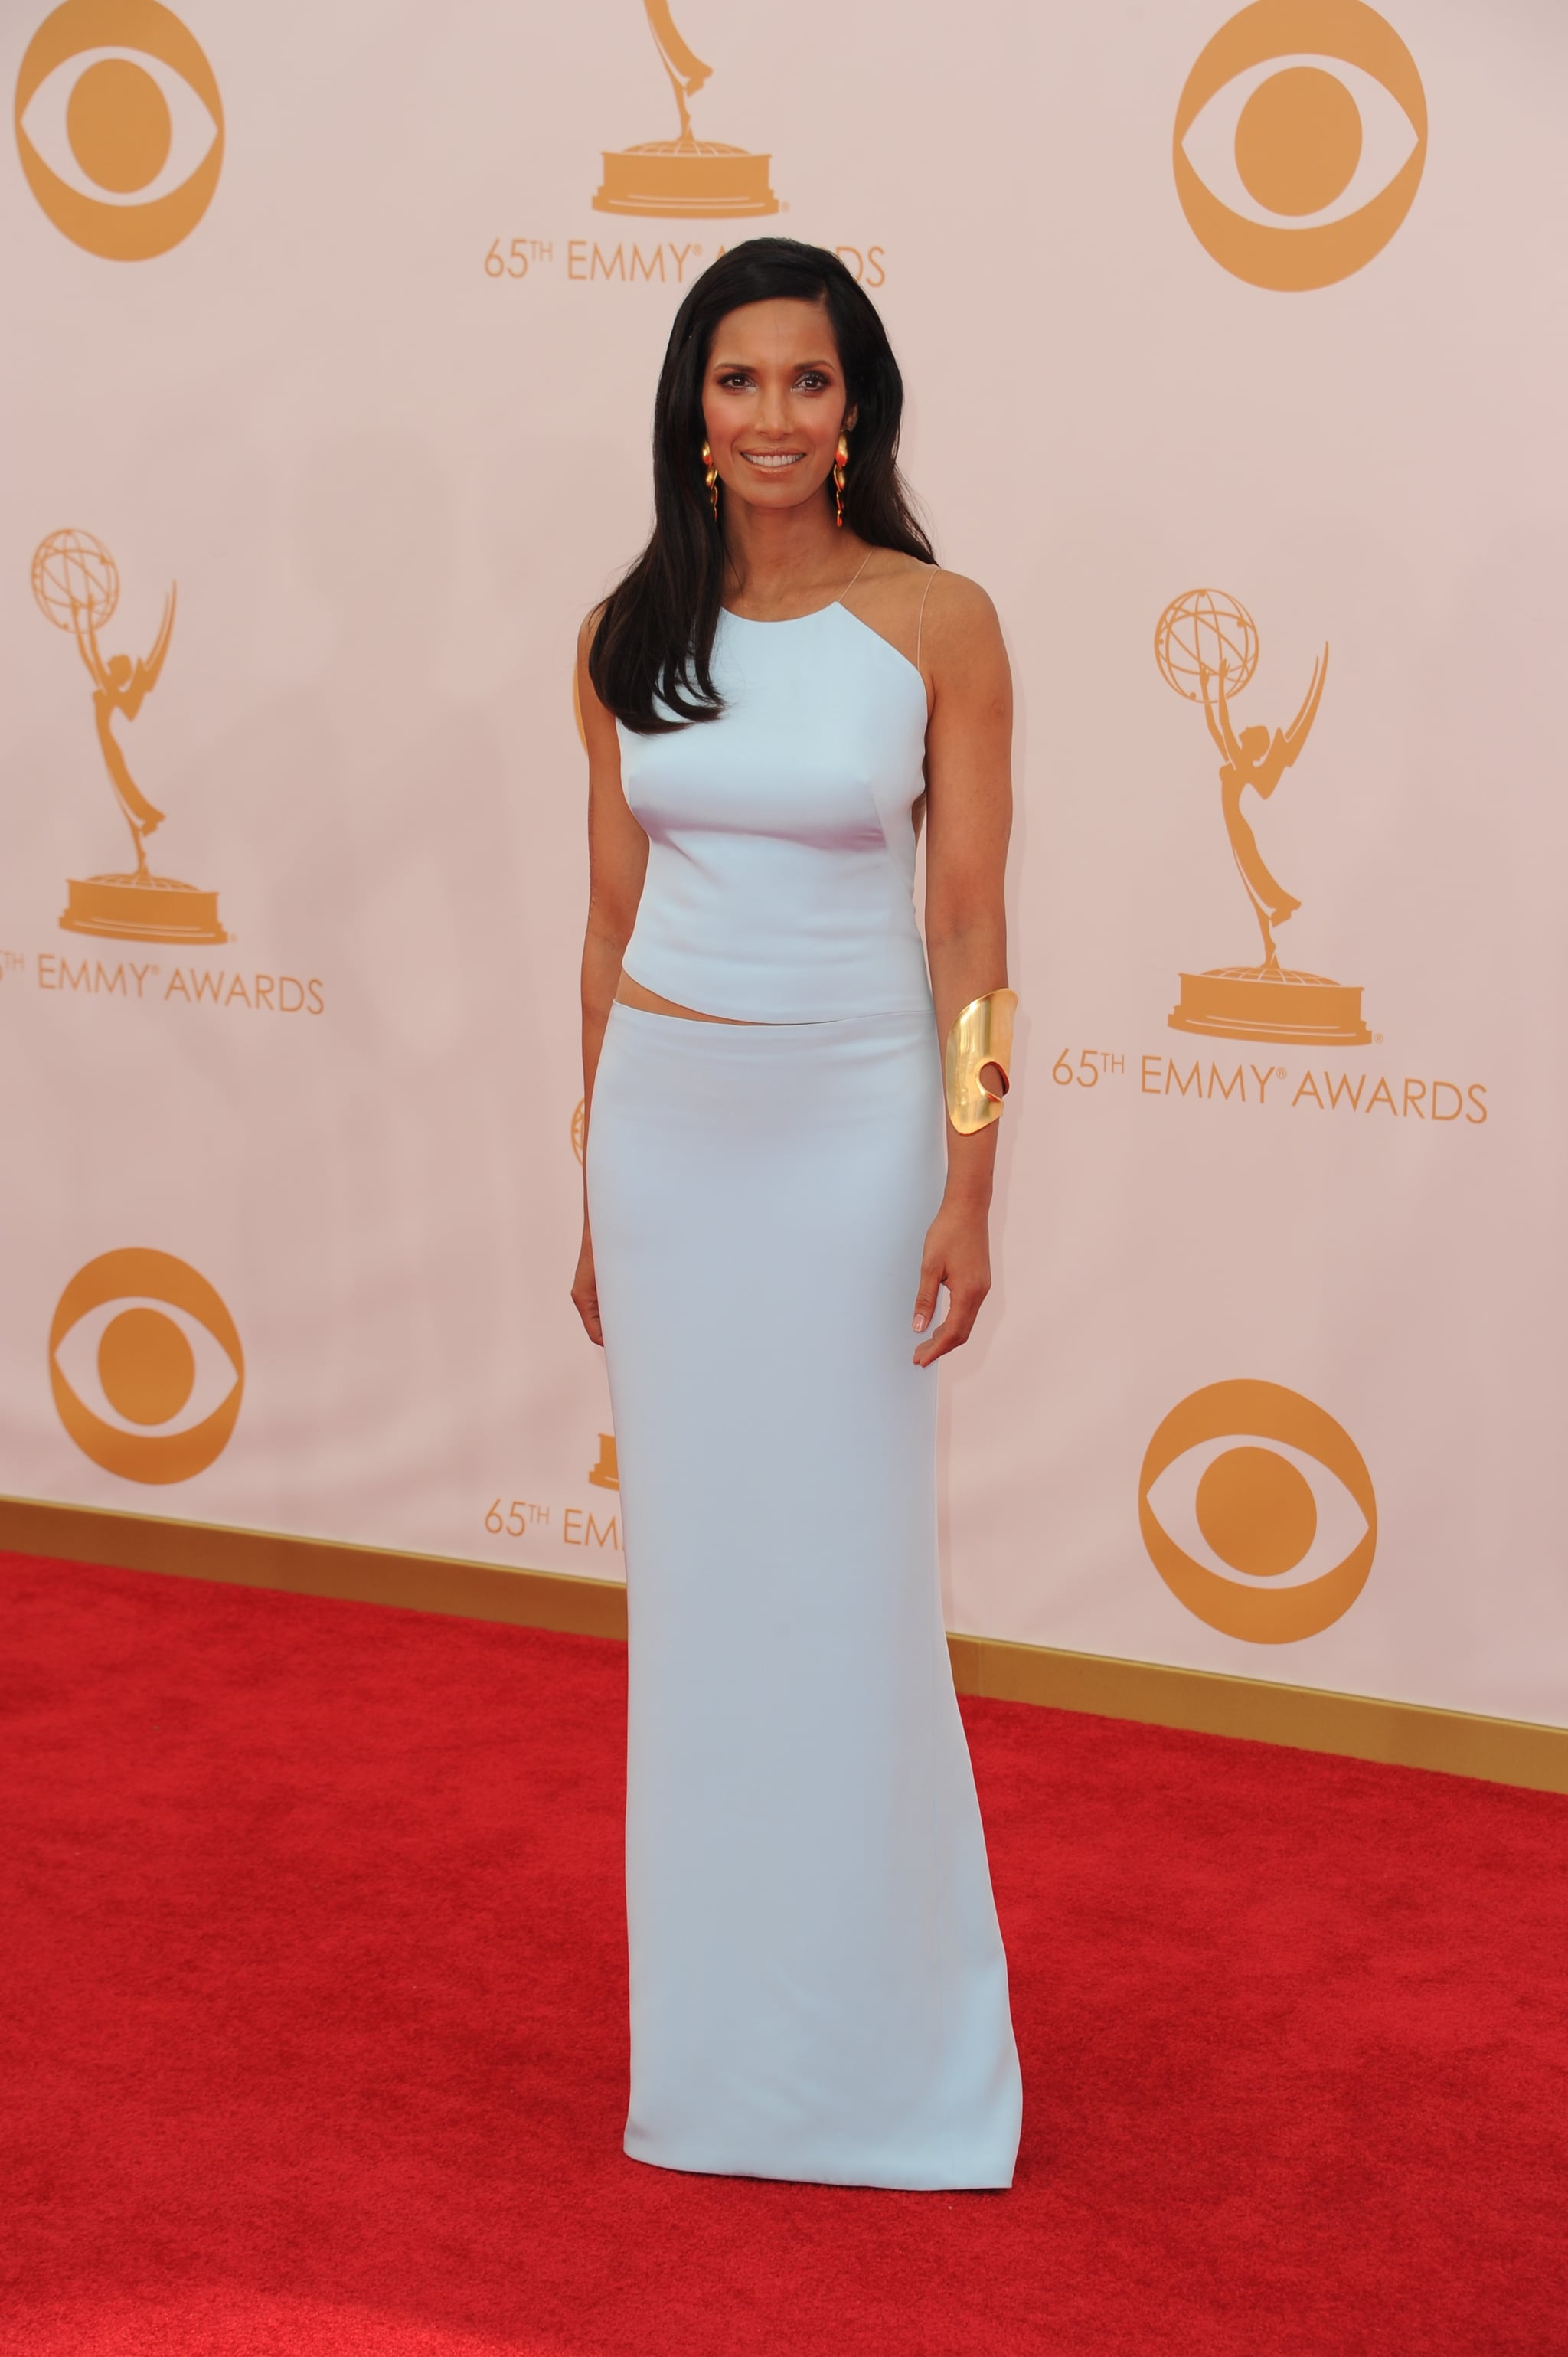 Padma Lakshmi hit the red carpet for the Emmys.